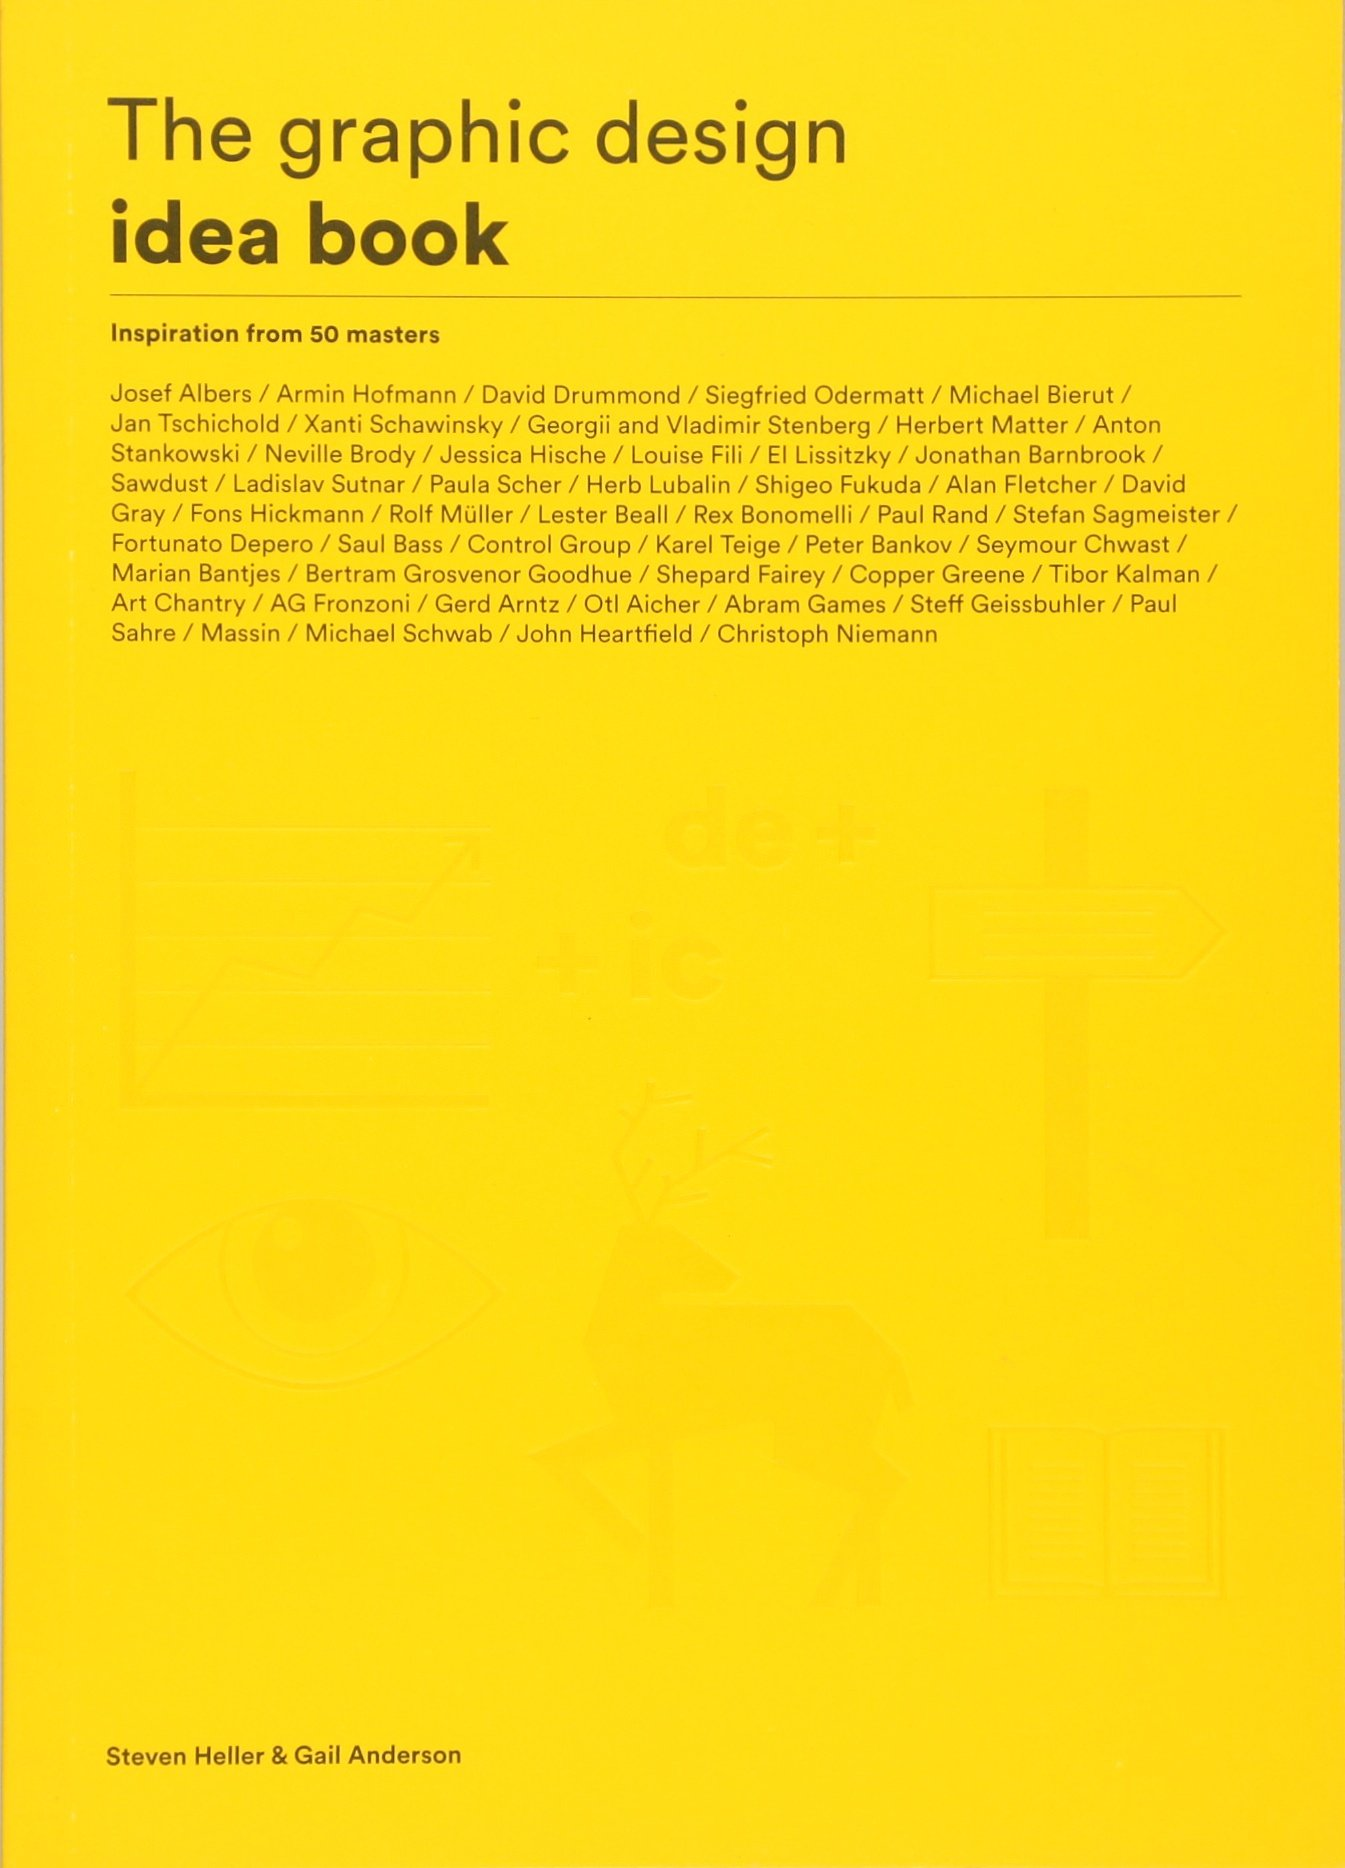 The Graphic Design Idea Book: Inspiration From 50 Masters: Amazon:  Steven Heller, Gail Anderson: 9781780677569: Books